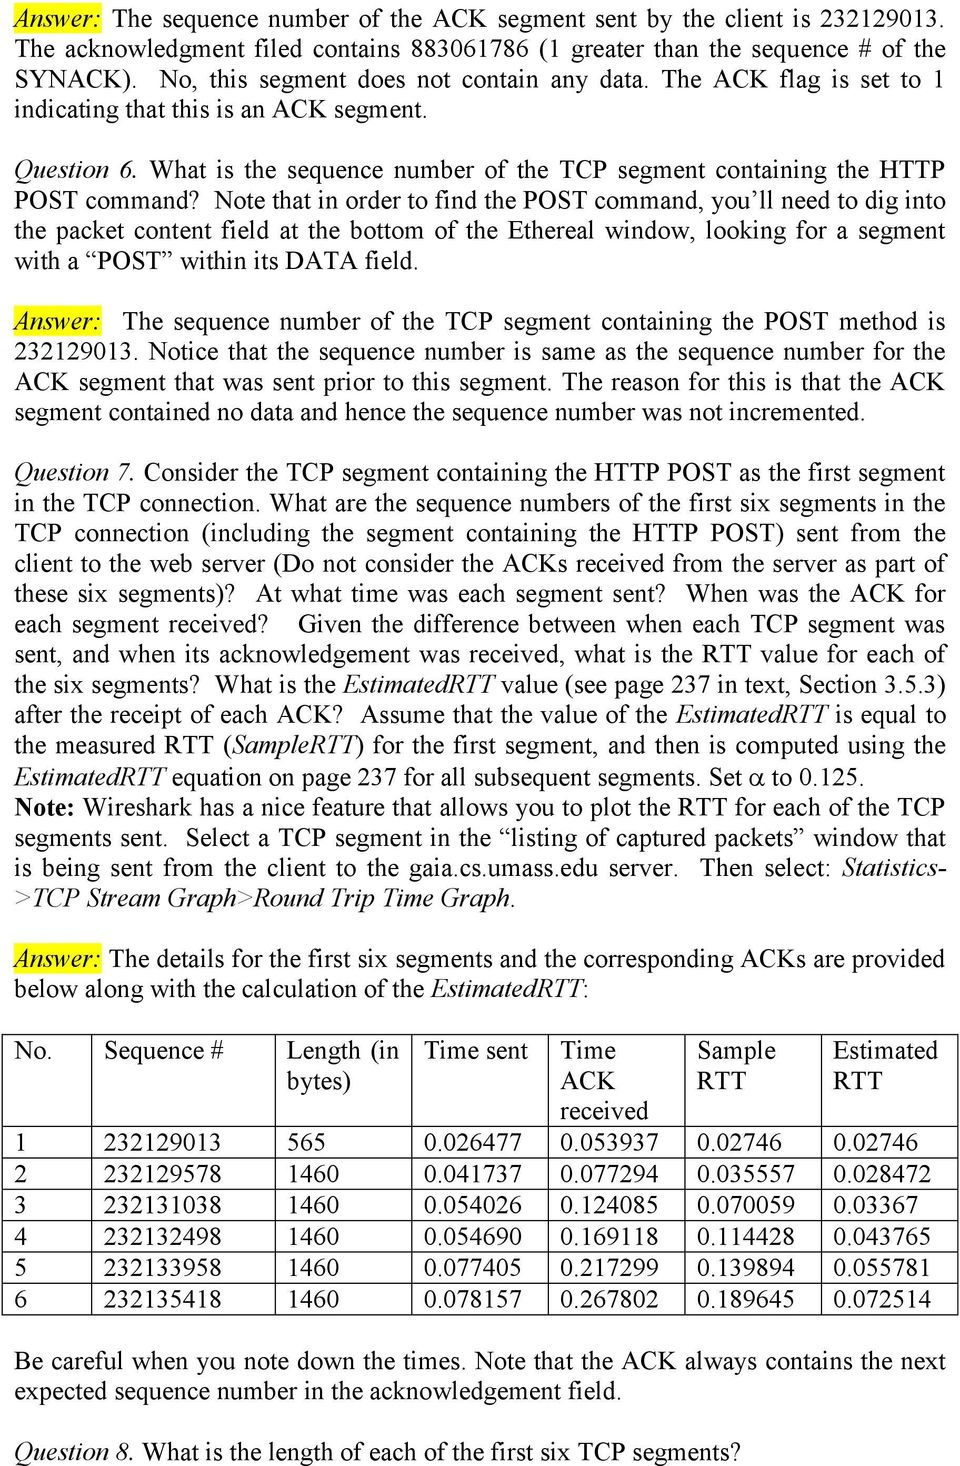 What is the sequence number of the TCP segment containing the HTTP POST command?